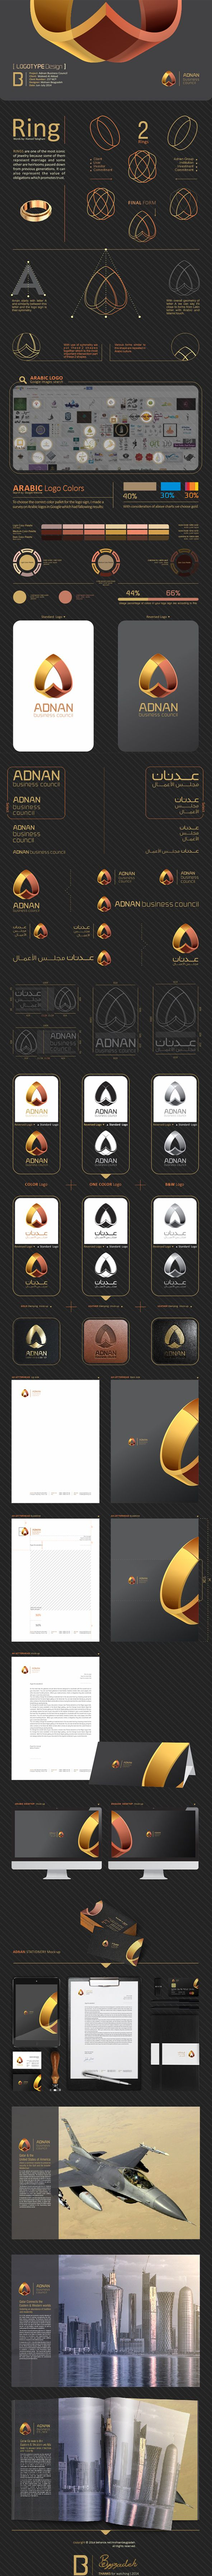 ADNAN Business Council [ Logo Design ] by Mohsen Beygzadeh, via Behance